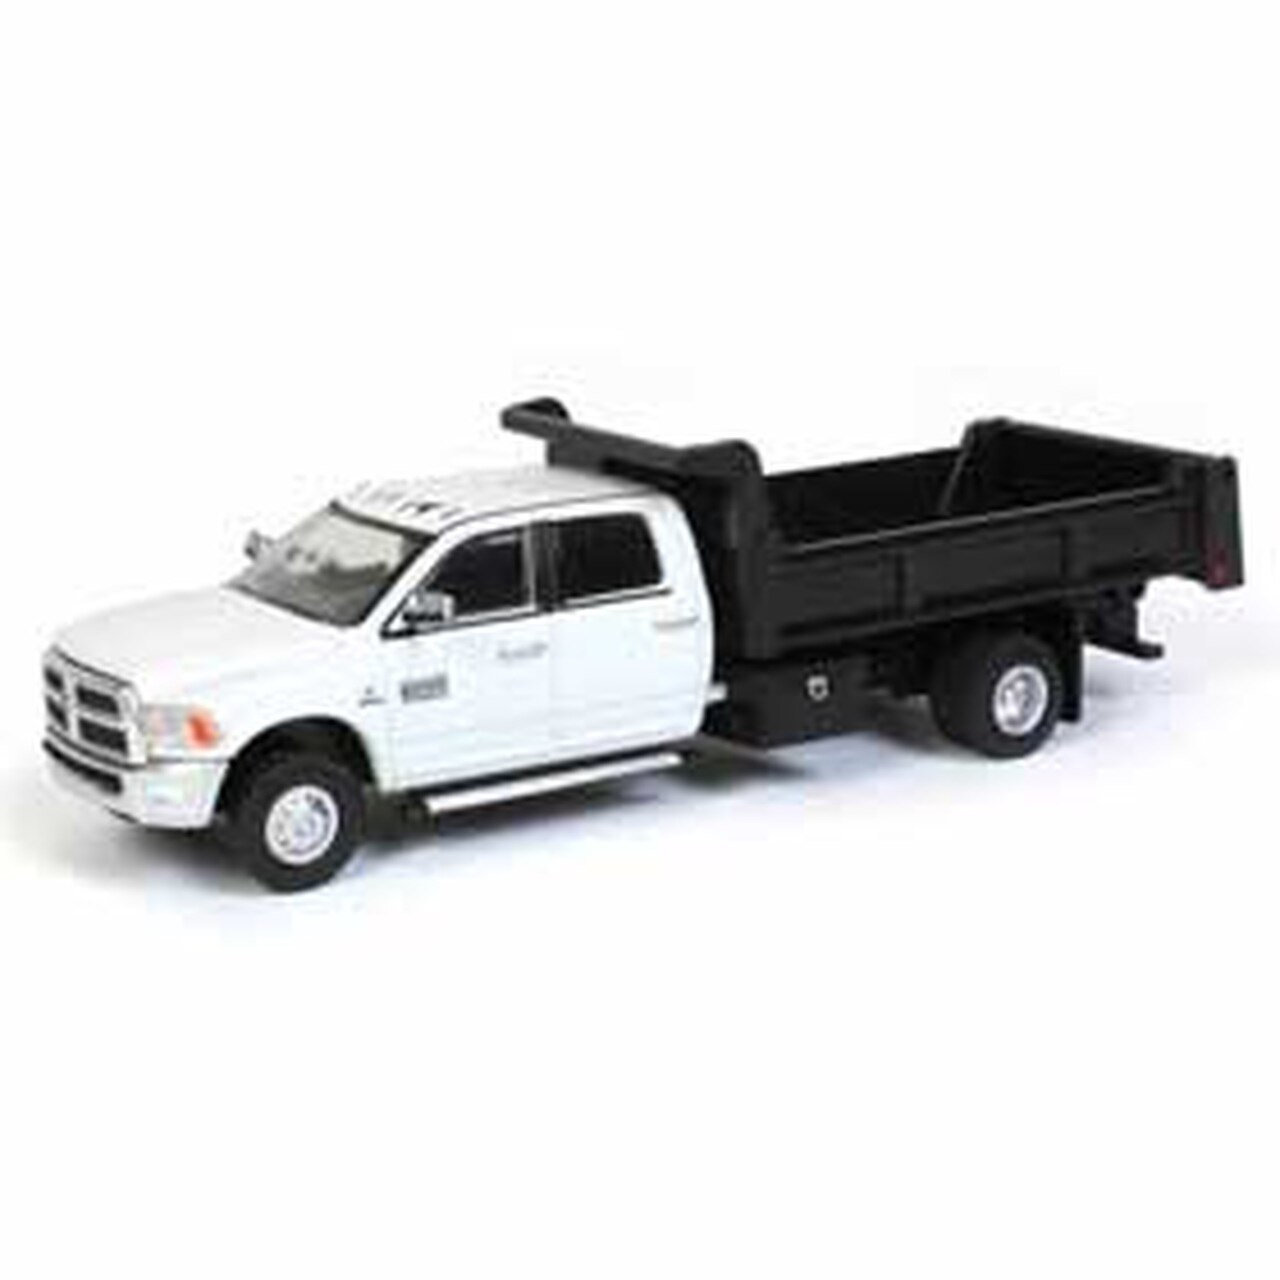 Metal Truck - 1:64 2018 Ram 3500 Laramie Dually Outback Exclusive